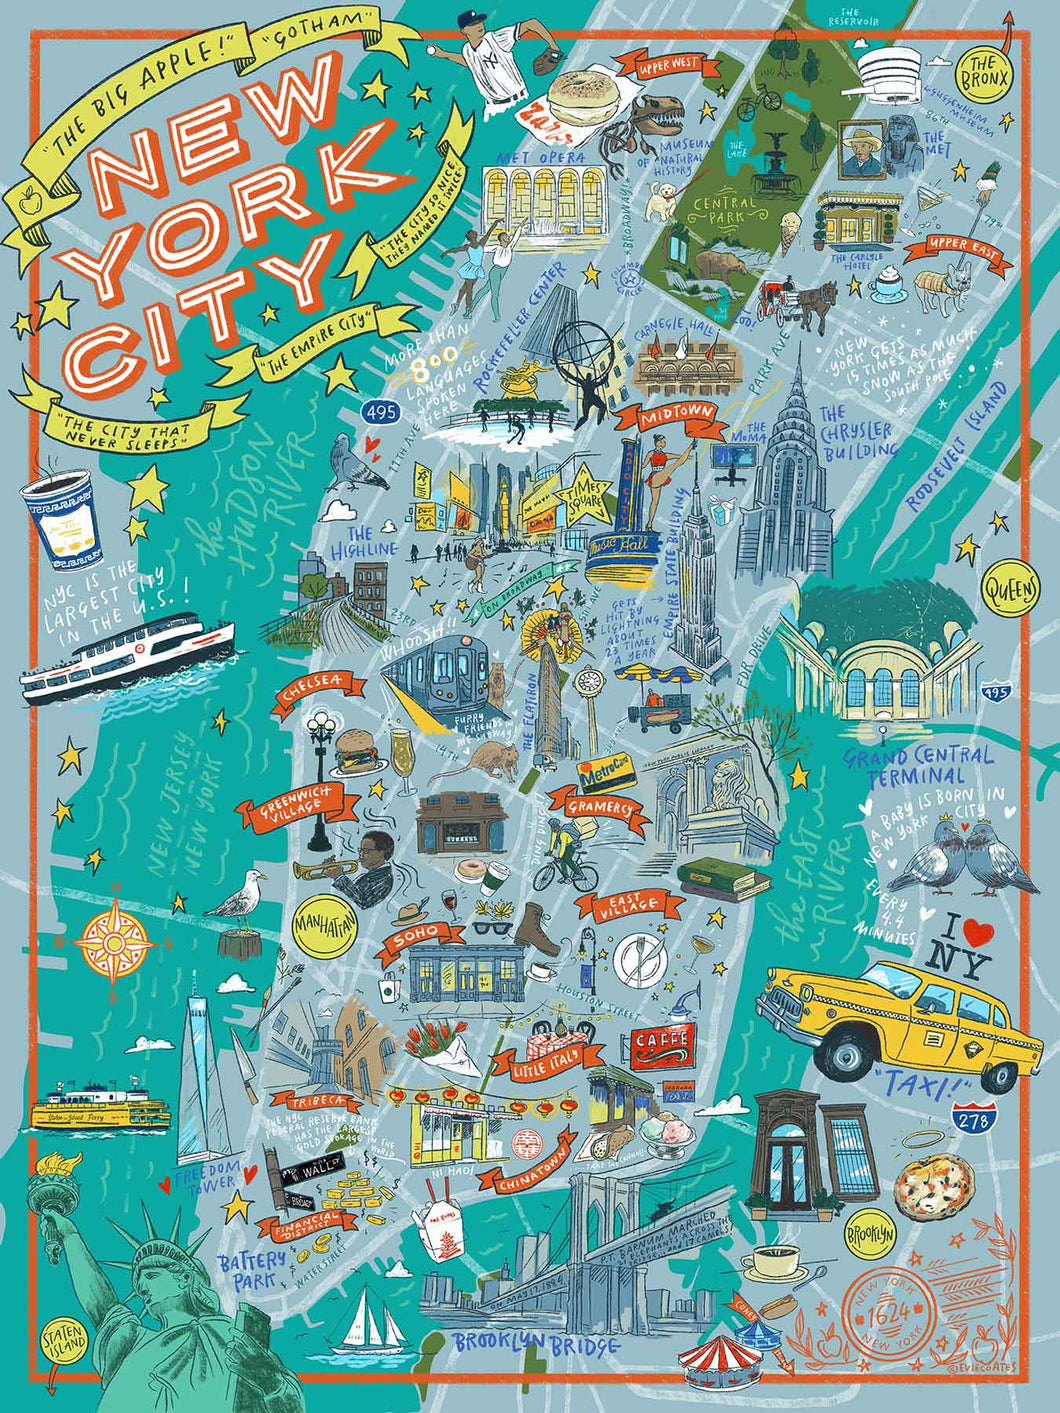 True South New York City Illustrated Puzzle